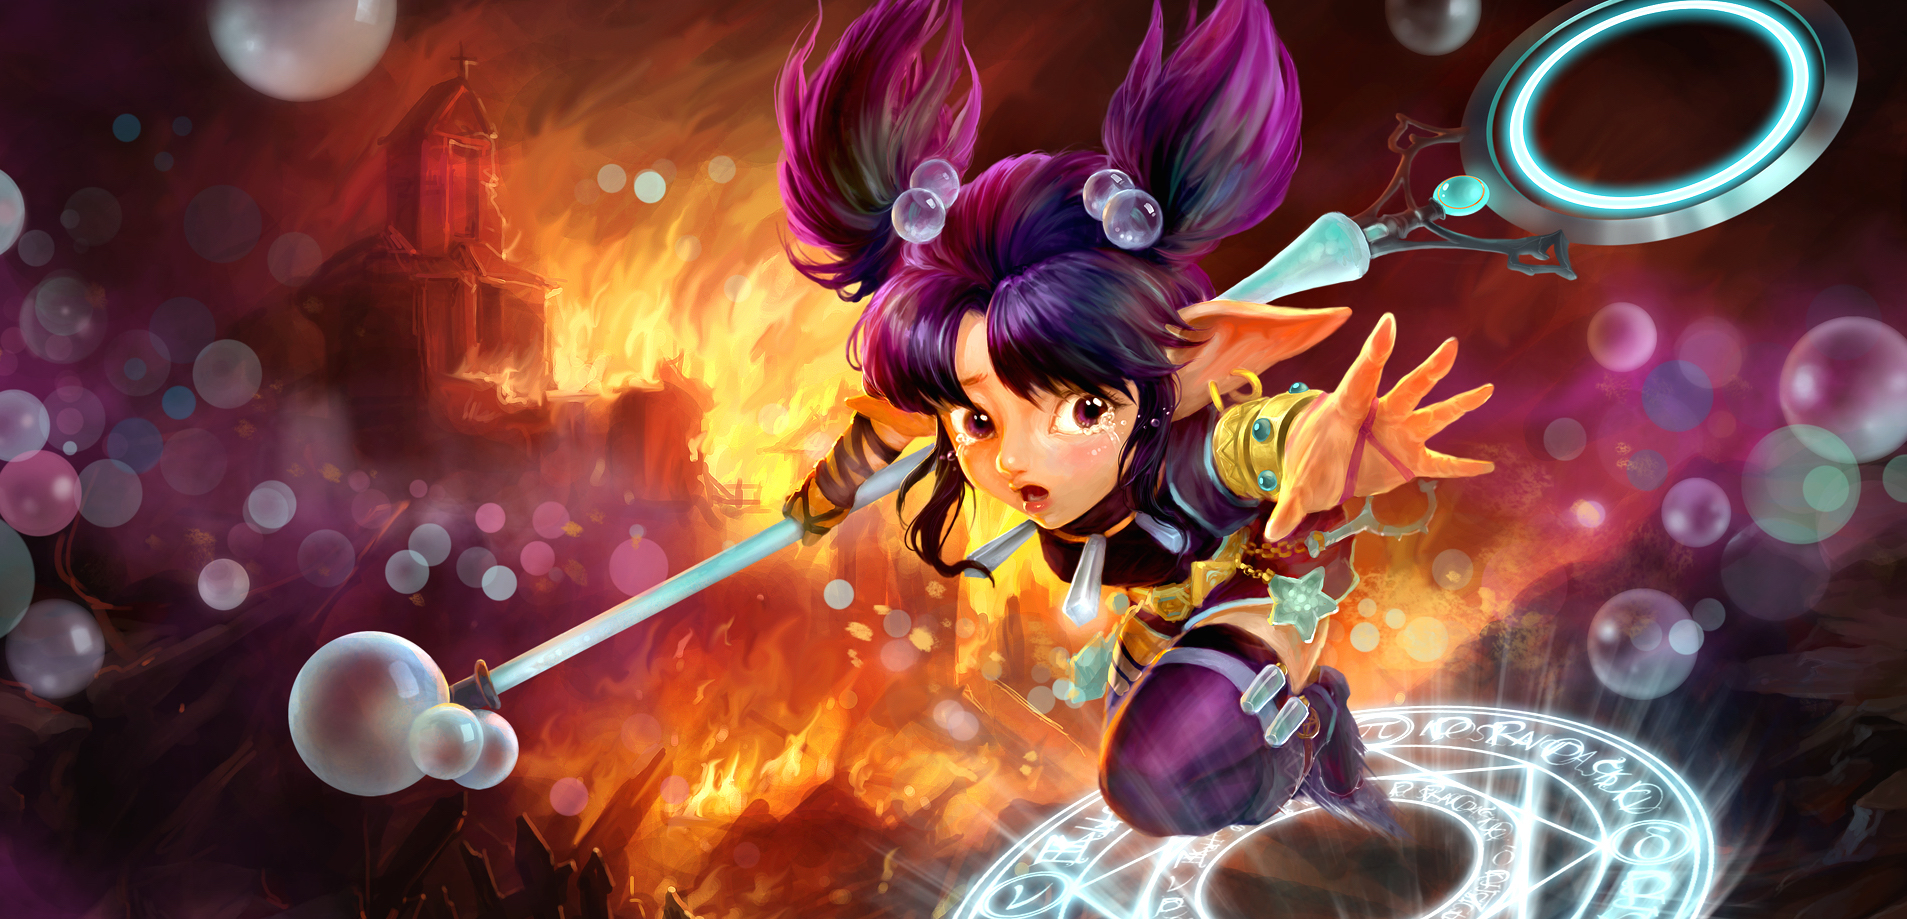 Heroes of Newerth gets a new owner and developer for its fifth anniversary